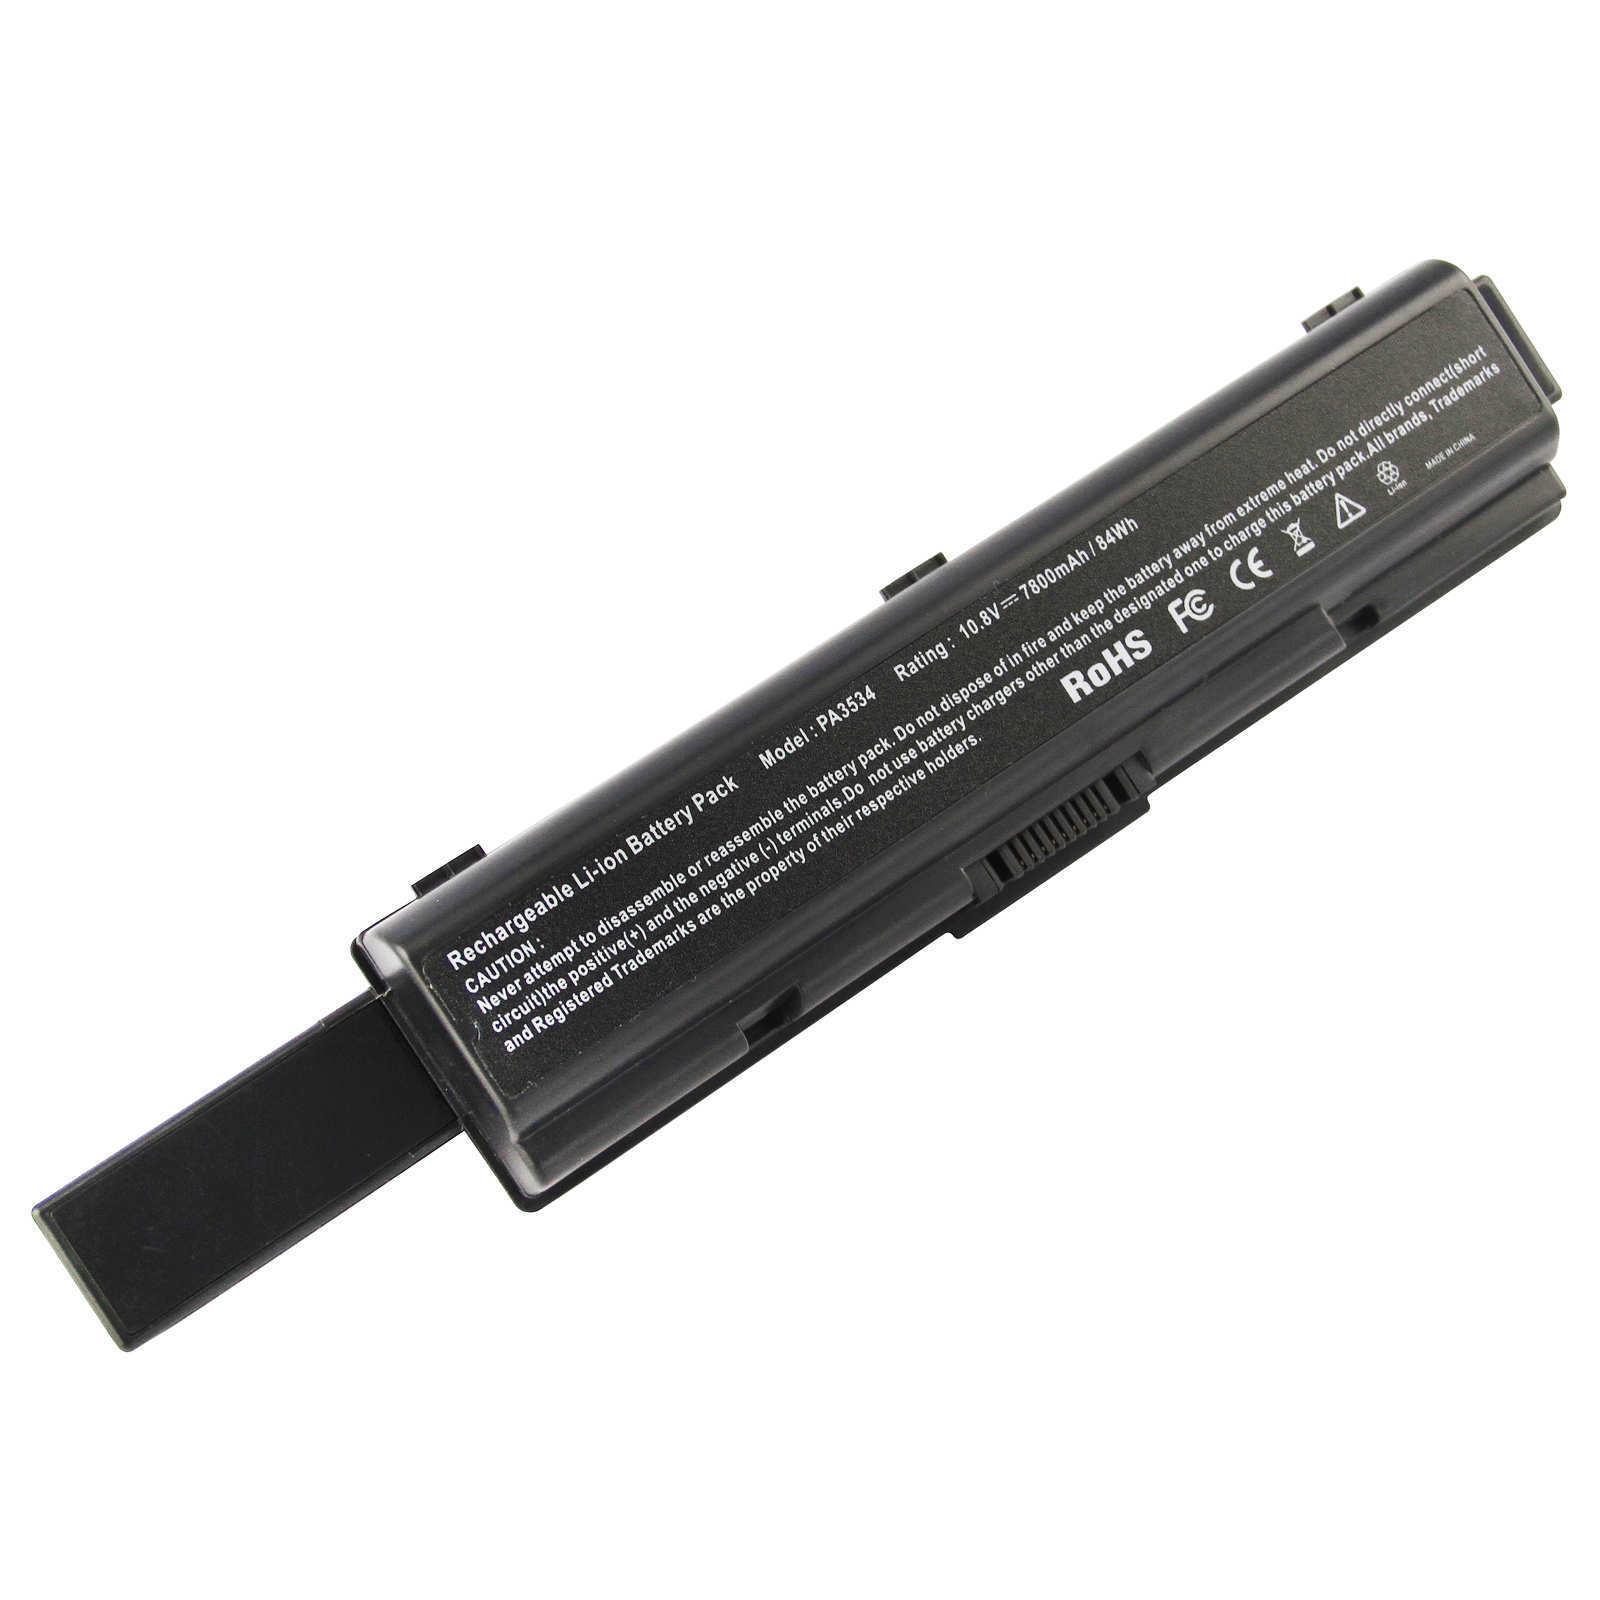 Replacement Toshiba Satellite A203 Battery